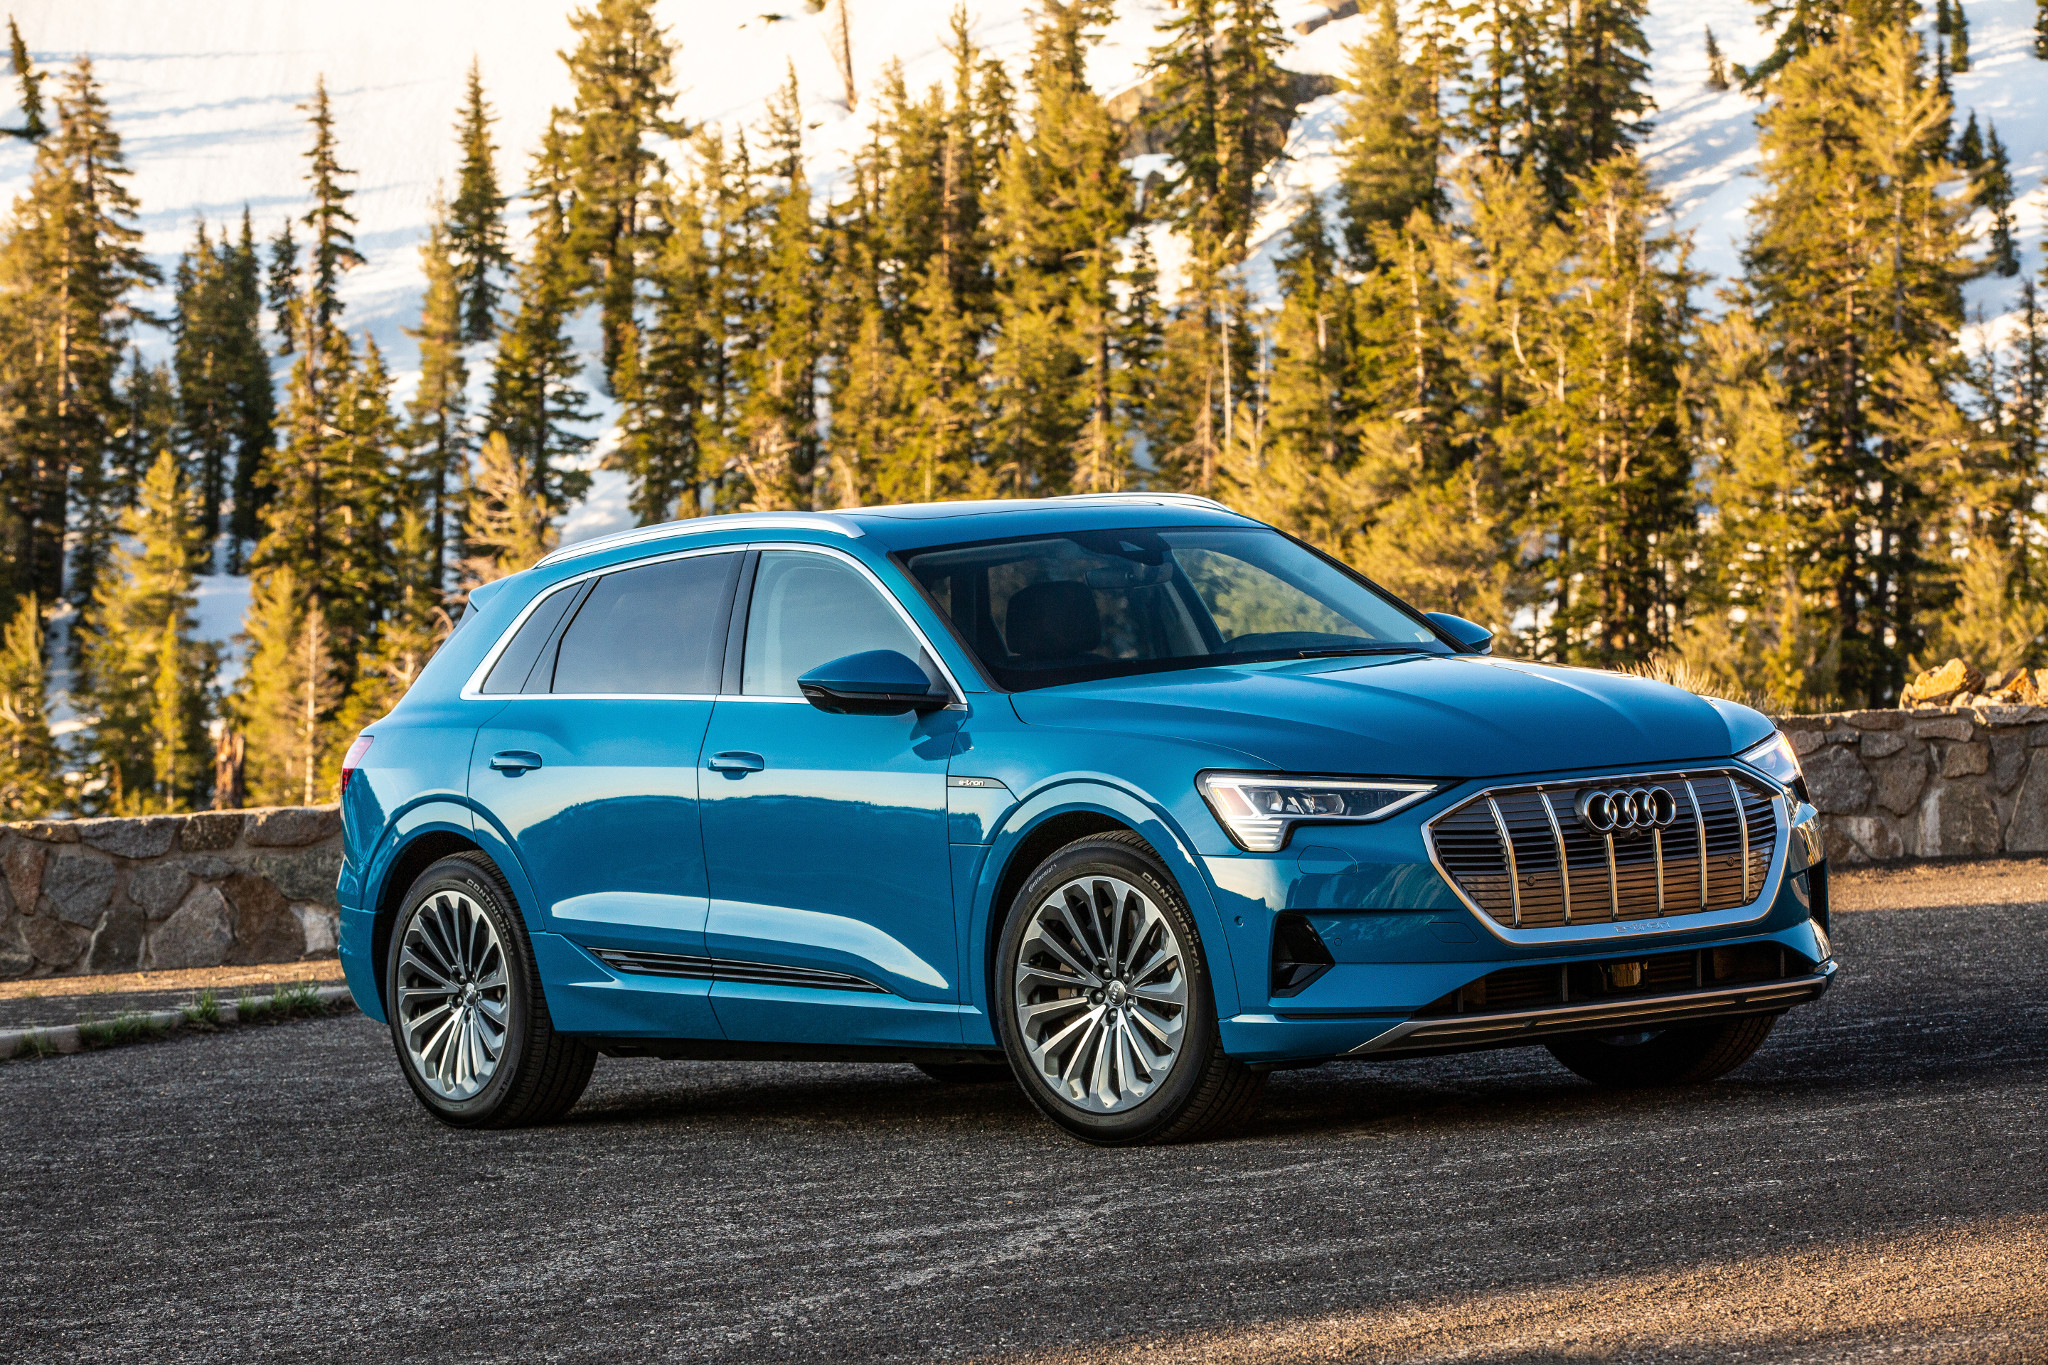 2019 Audi e-tron First Drive: Electric SUV Is Golden Gloves to Tesla's MMA